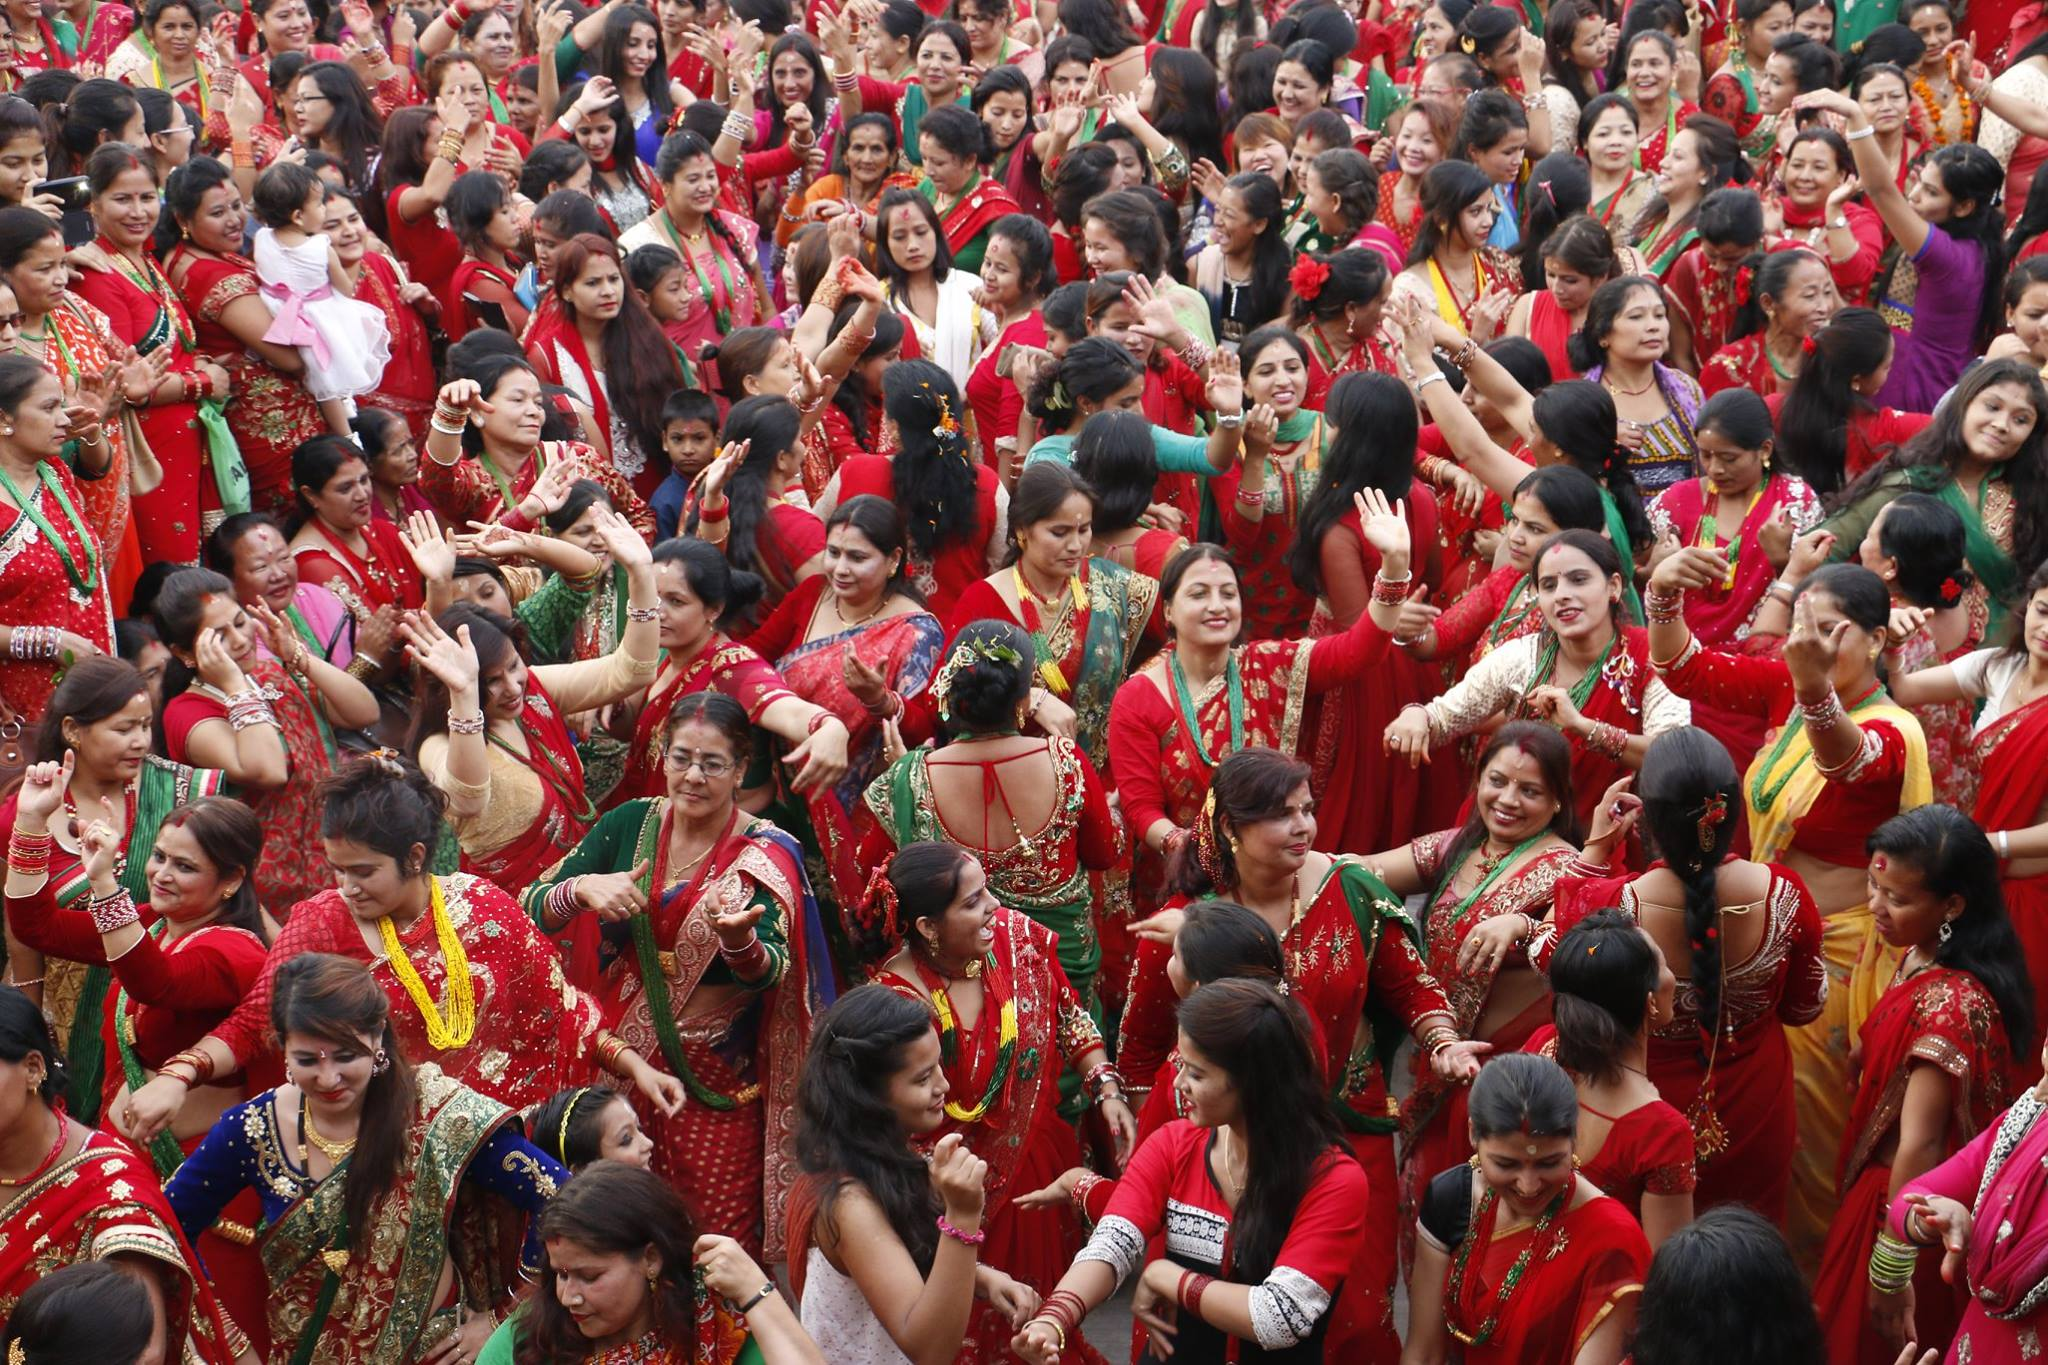 Women dancing and celebrating in Teej festival. Photo courtesy of Kapil Thapa‎